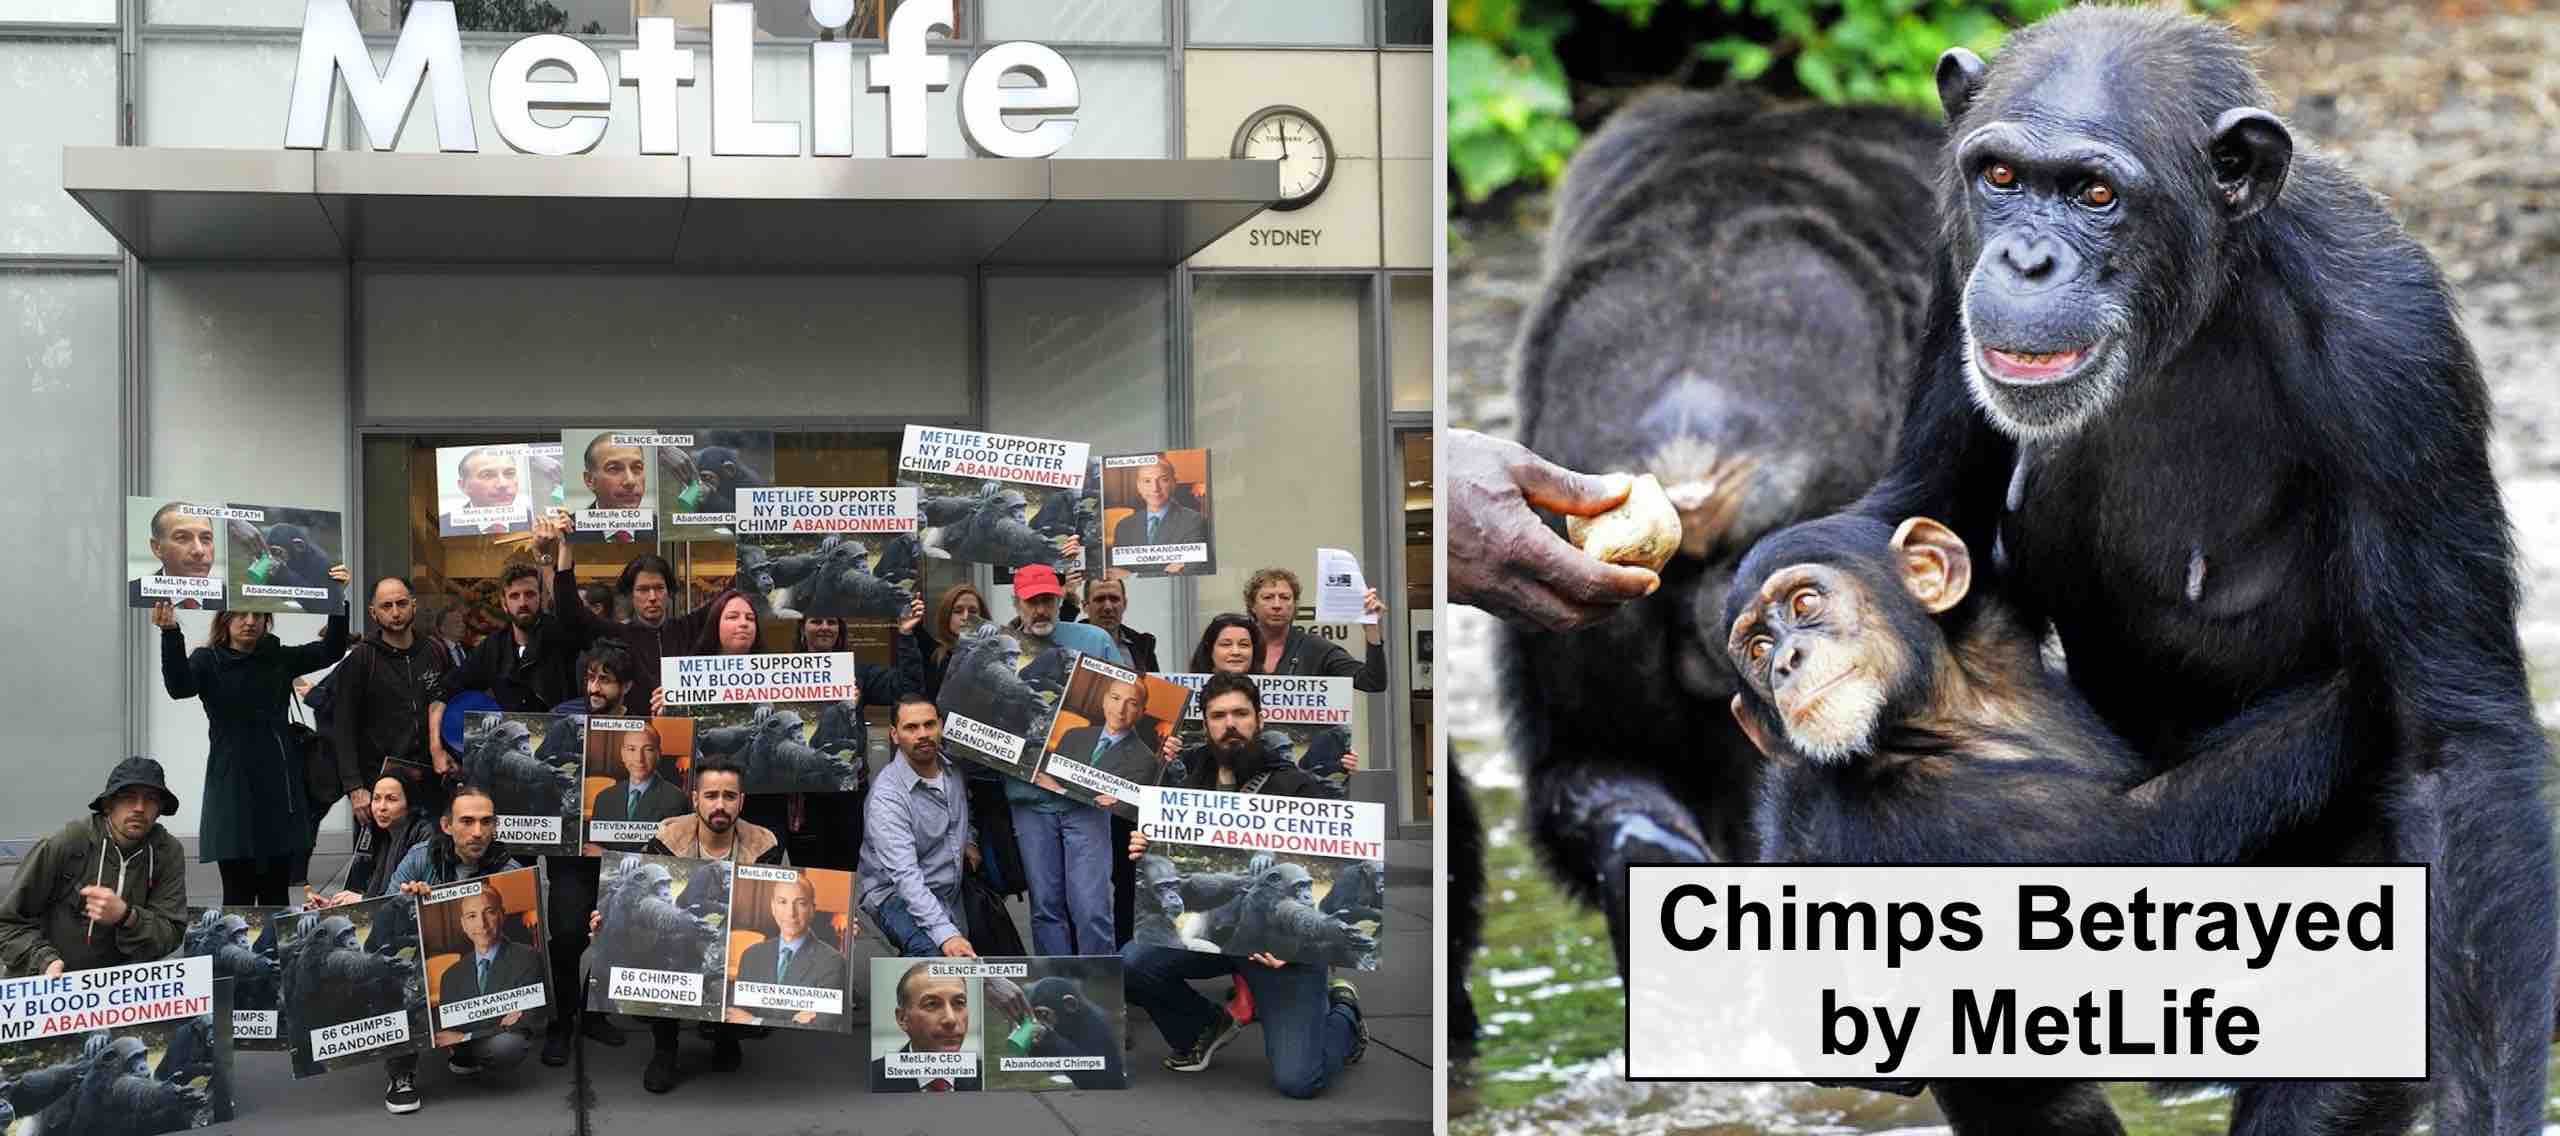 MetLife has refused to hold NYBC accountable for its abandonment of 66 chimpanzees.